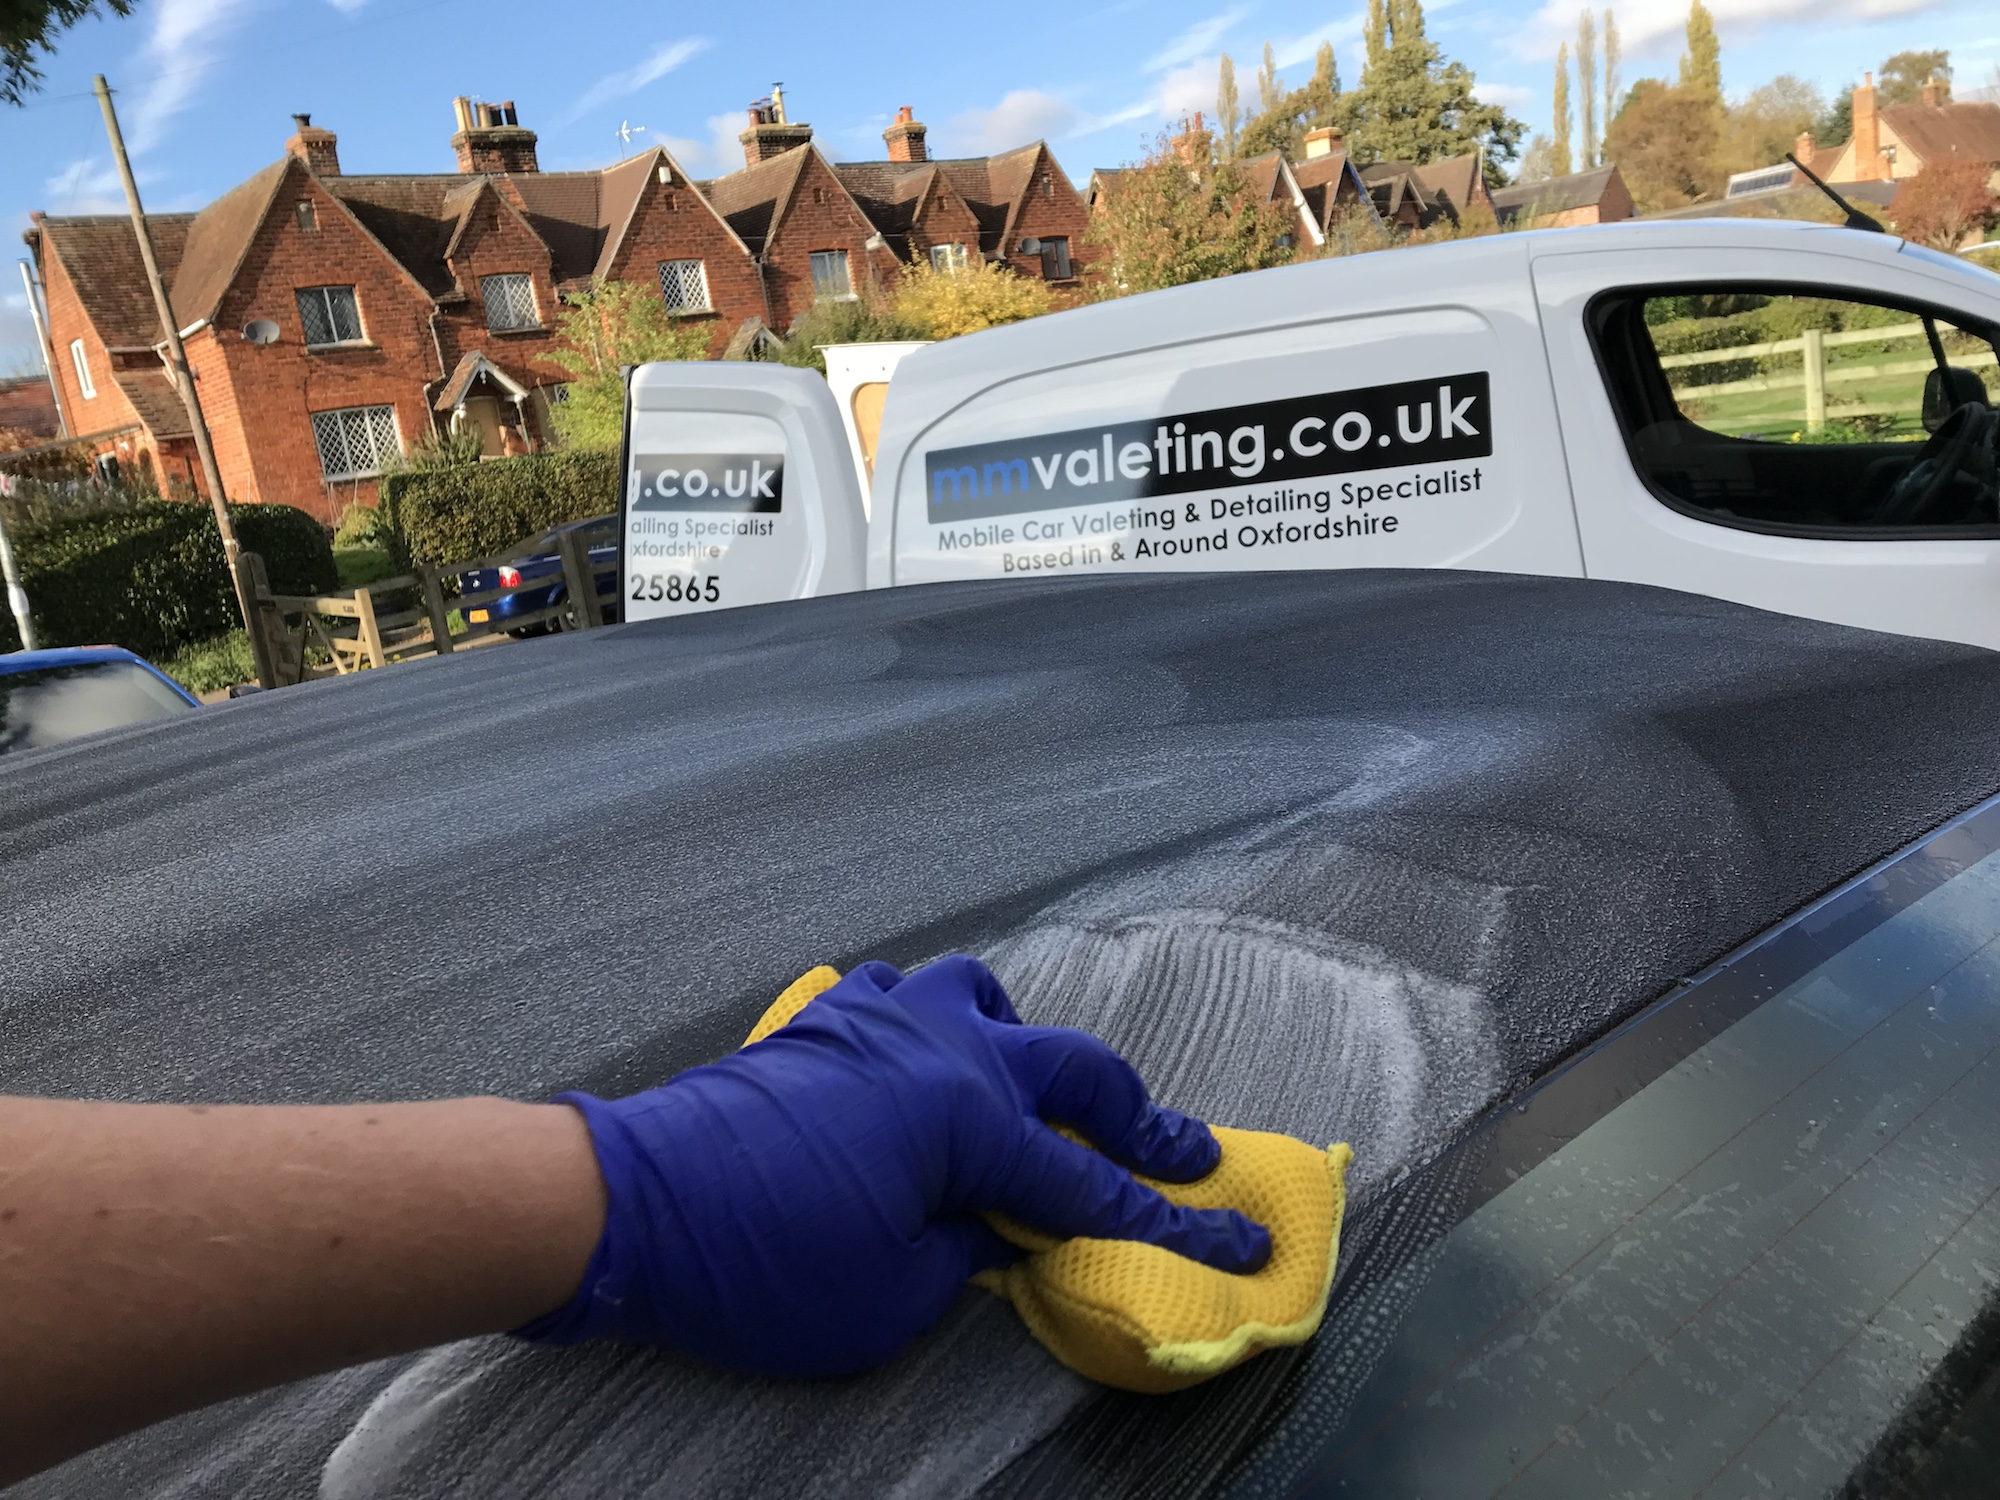 Fabric Hood cleaning for your vehicle. A specialist service provided by mmvaleting in Oxfordshire and Buckinghamshire.